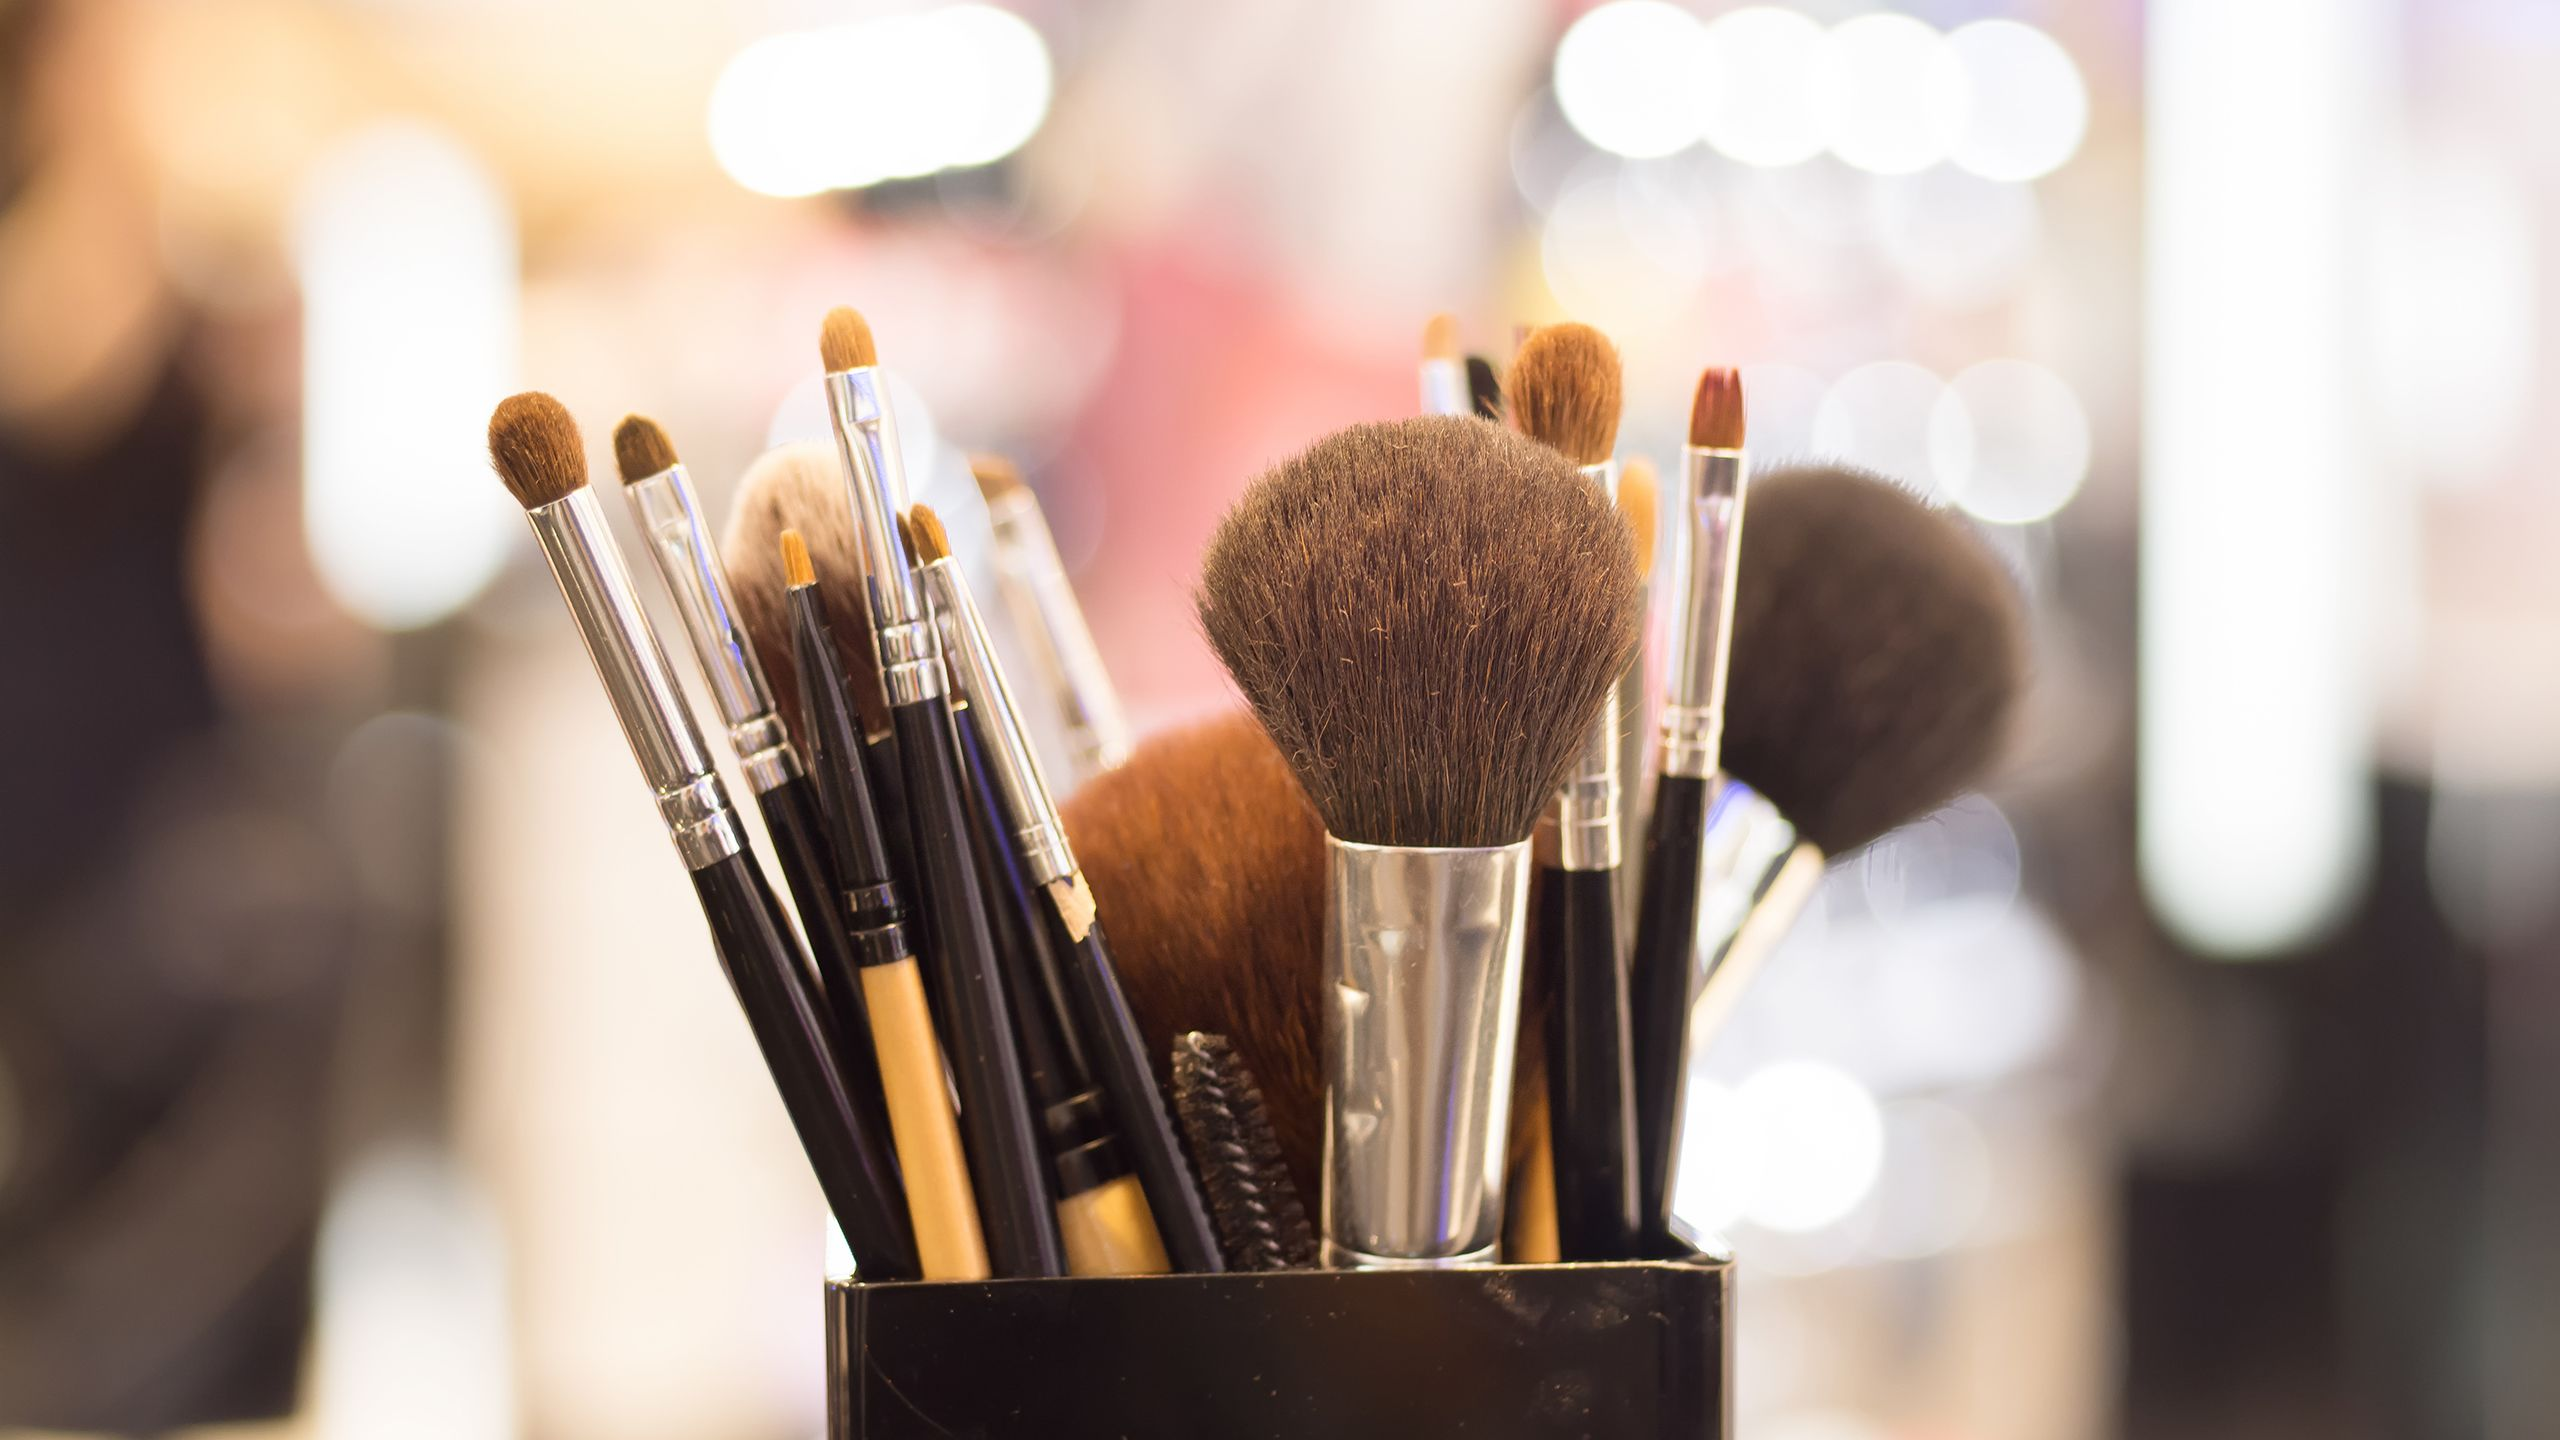 7 Makeup Mistakes You Are Probably Making—And How To Fix Them